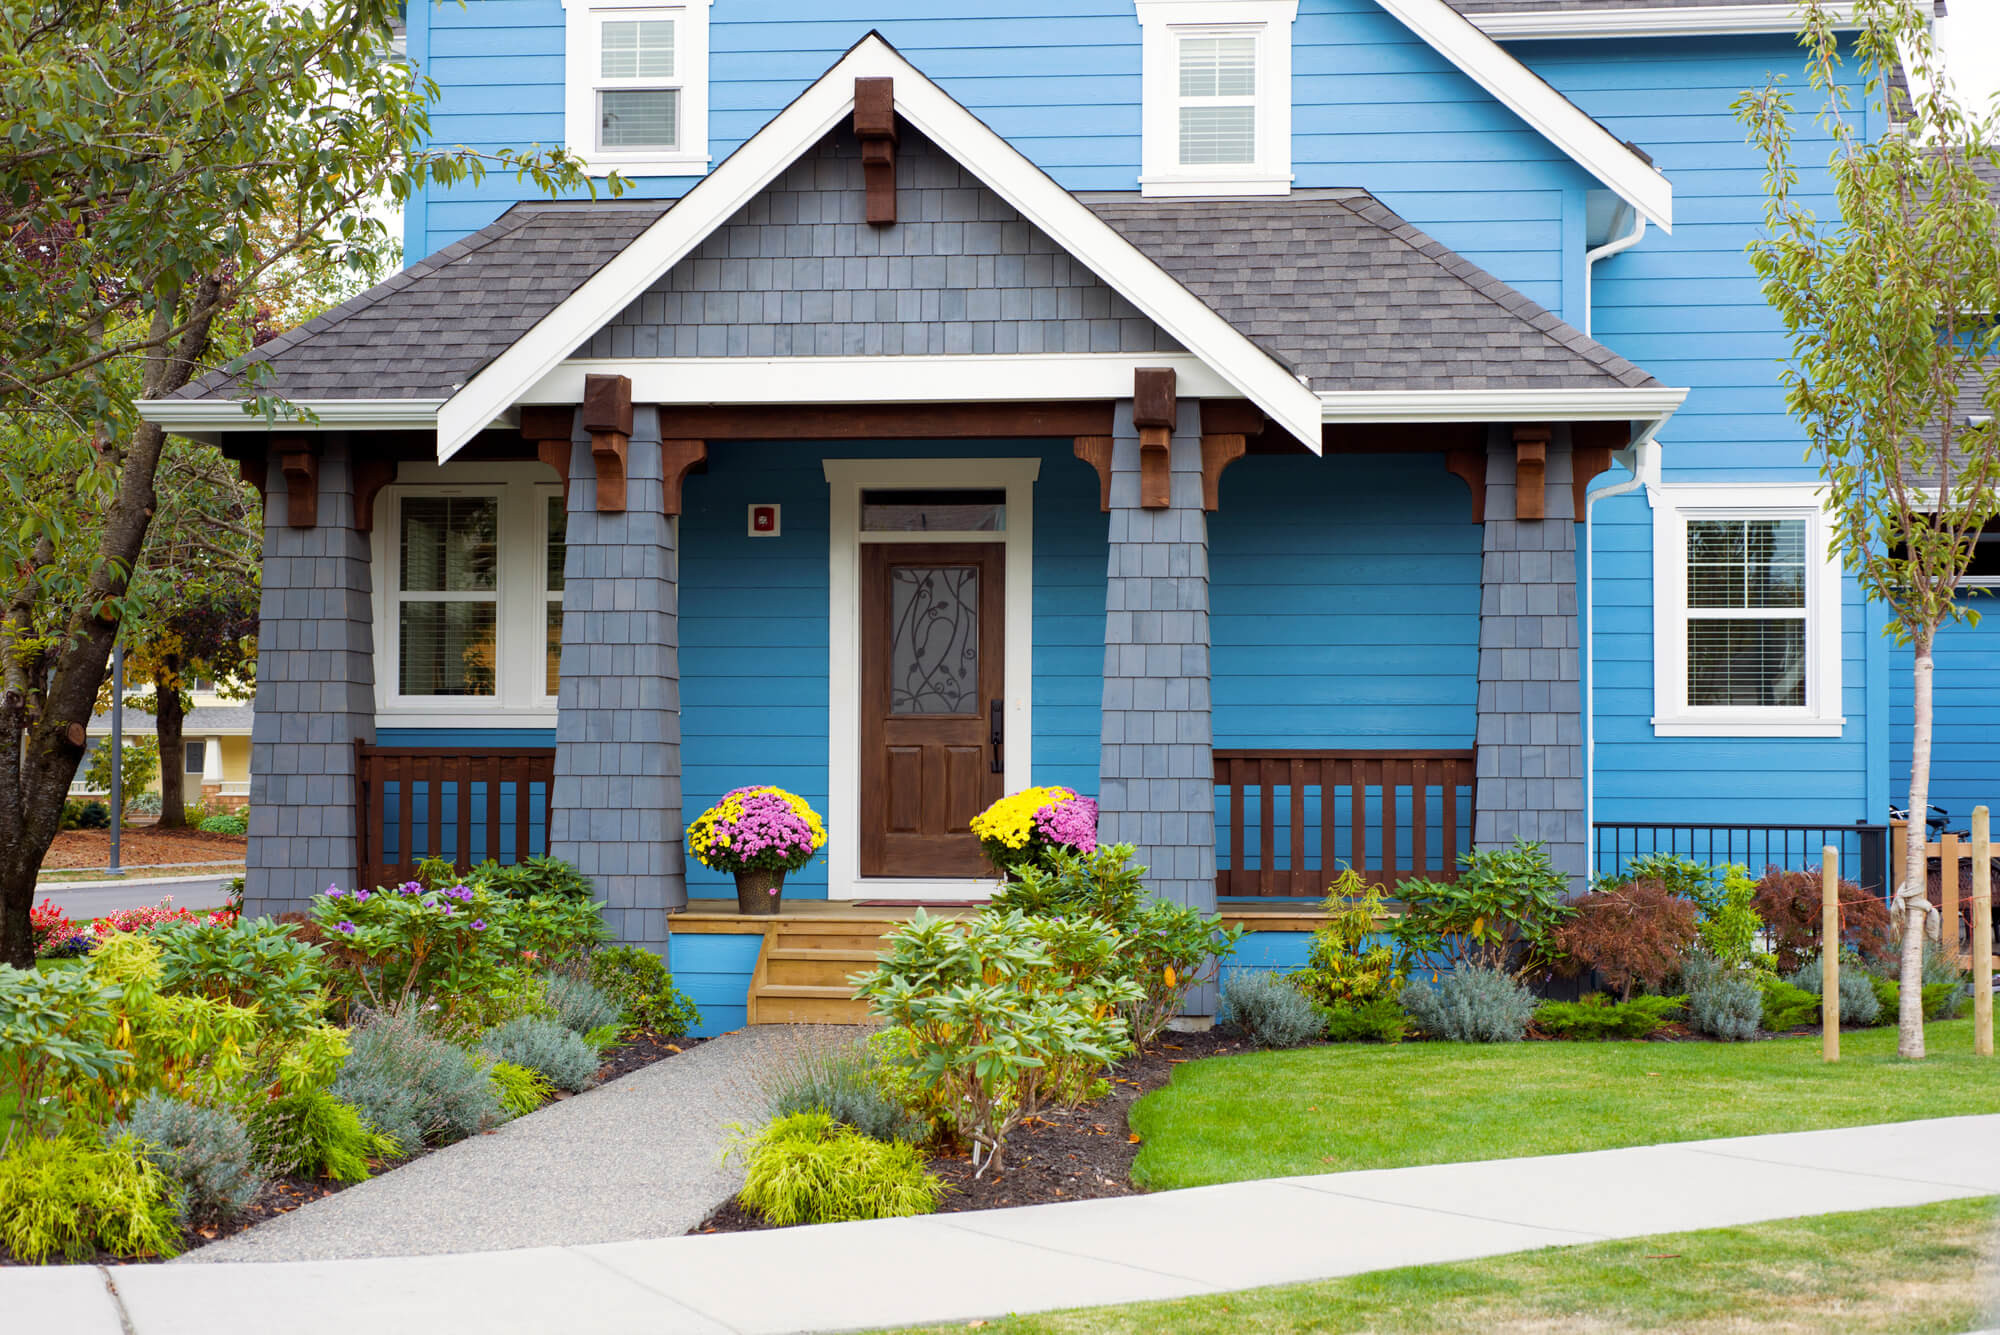 Landscape Ideas For Front Yard  5 Bud Friendly Ways to Landscape Your Front Yard